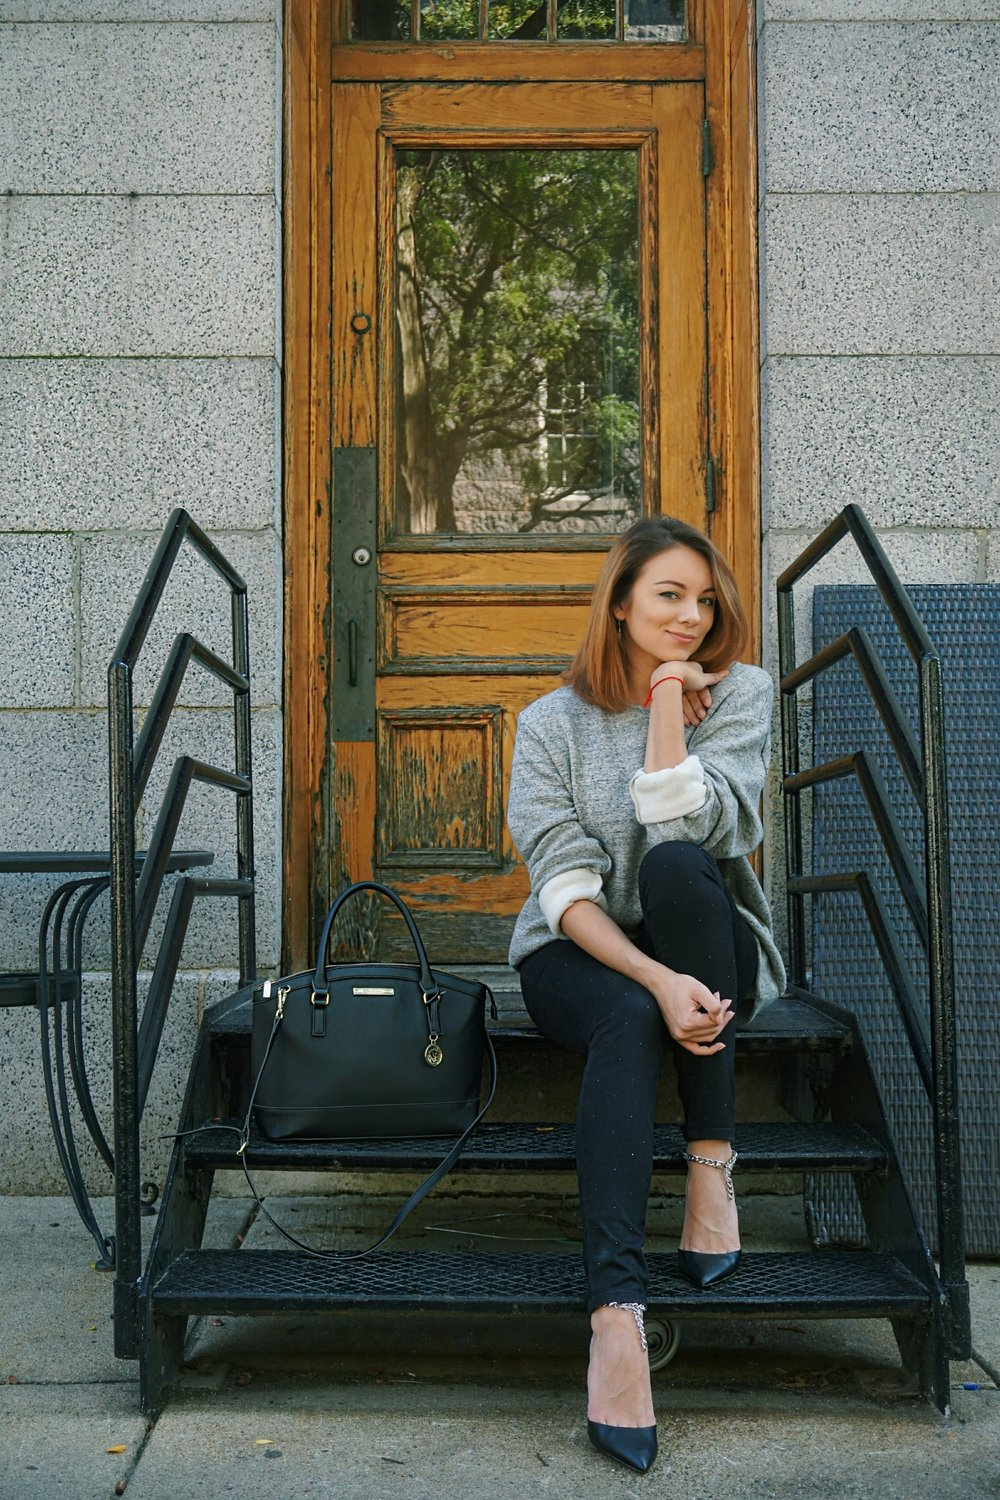 A fashion blogger sitting on the stairs wearing a men's big sweater, black Jennifer Lopez jeans, and black heels.